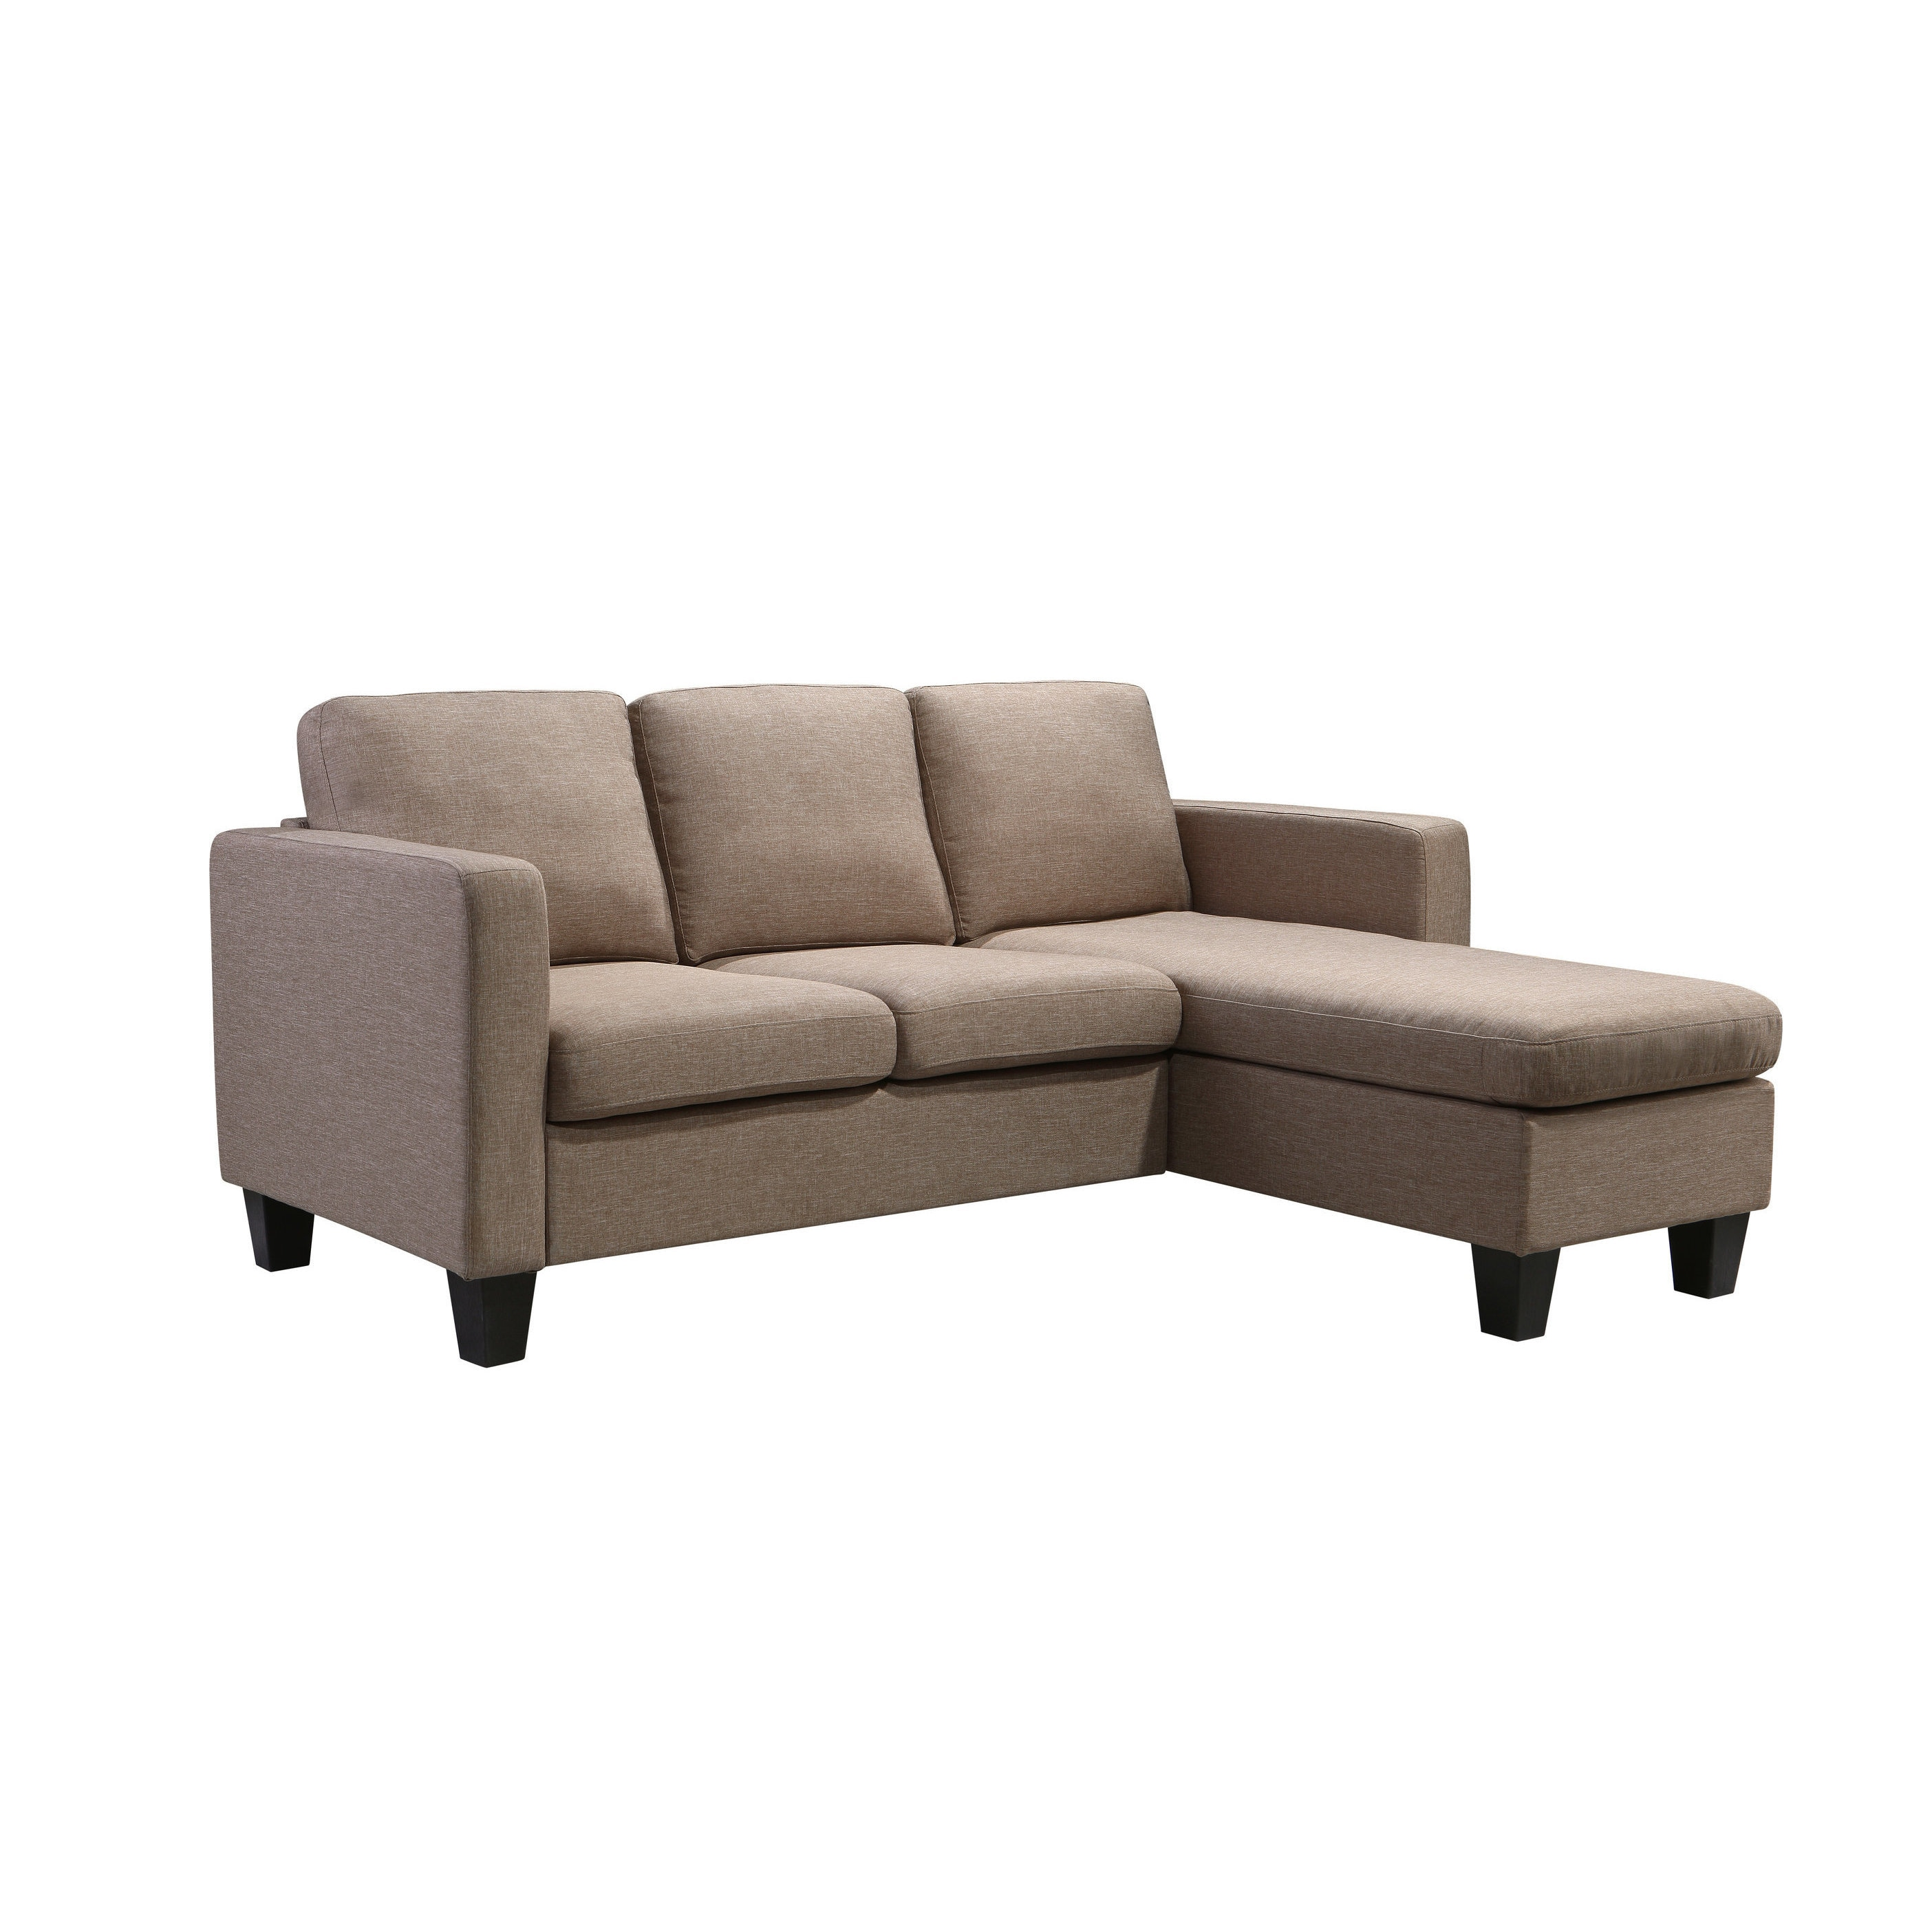 Charmant Shop Kinnect Park 2 Seat Sofa With Chaise Lounger   Free Shipping Today    Overstock.com   17159760